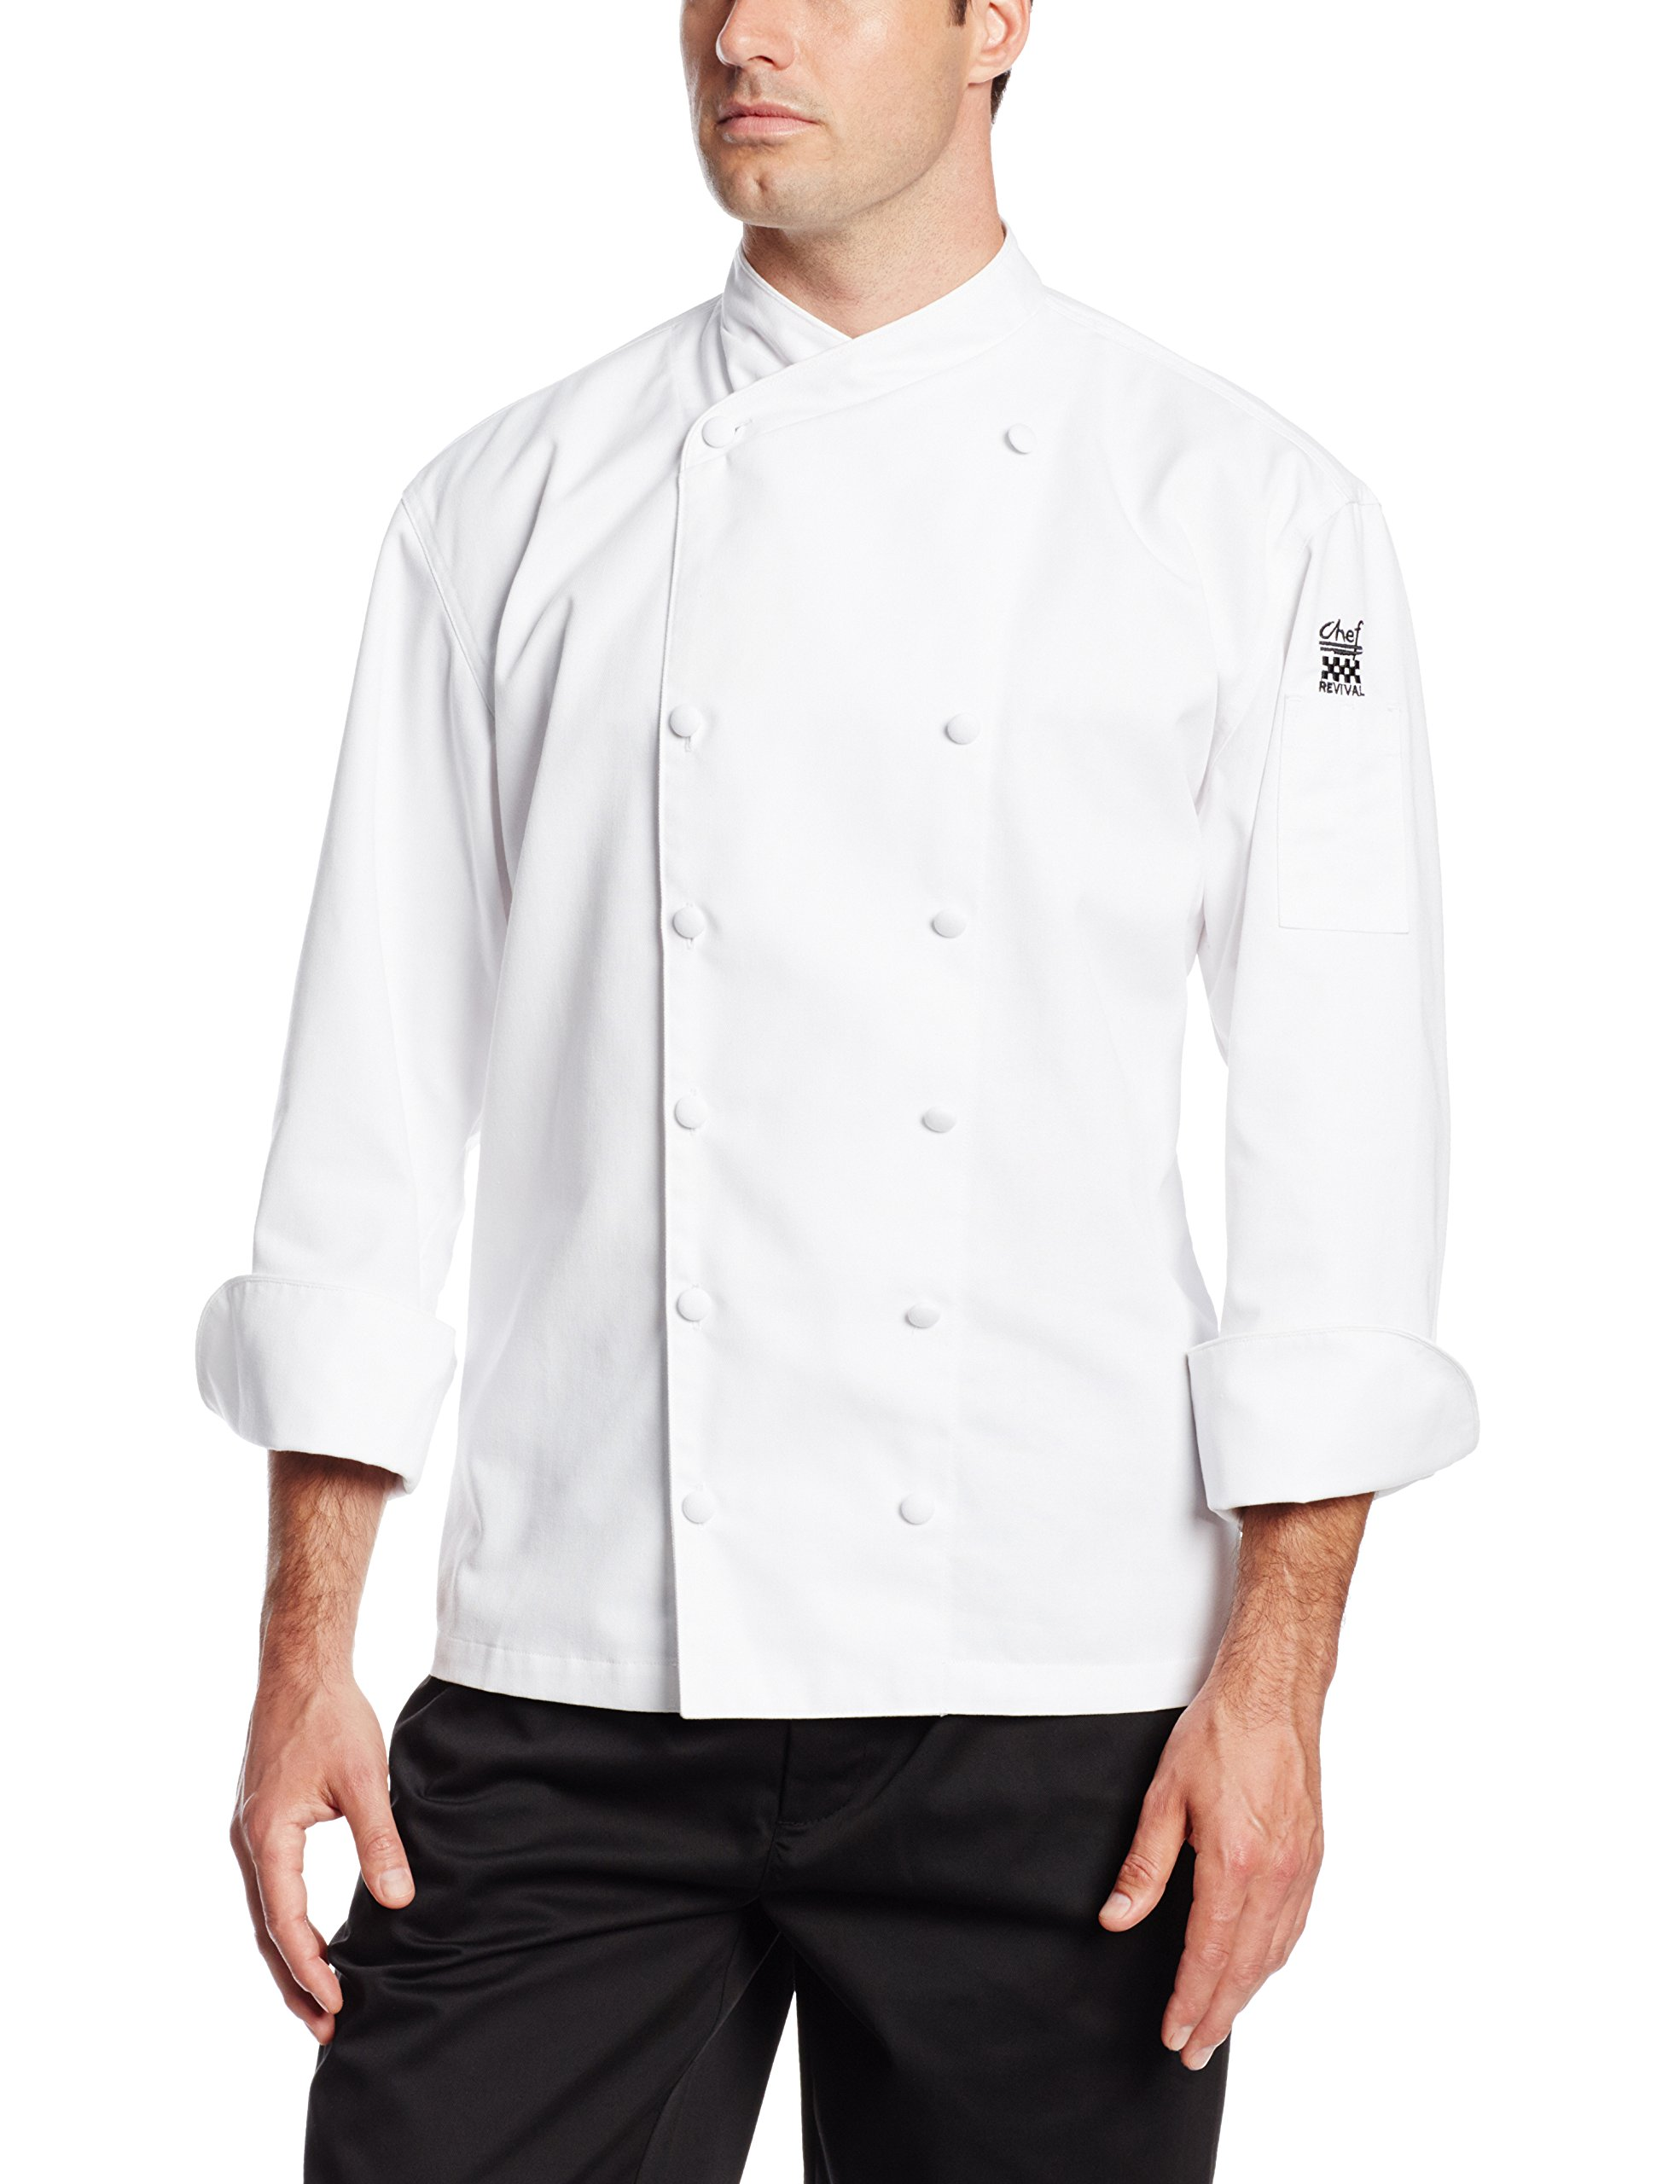 Chef Revival J006 Chef-Tex Poly Cotton Corporate Chef Jacket with White Piping and Cloth Covered Button Style, 4X-Large, White by Chef Revival